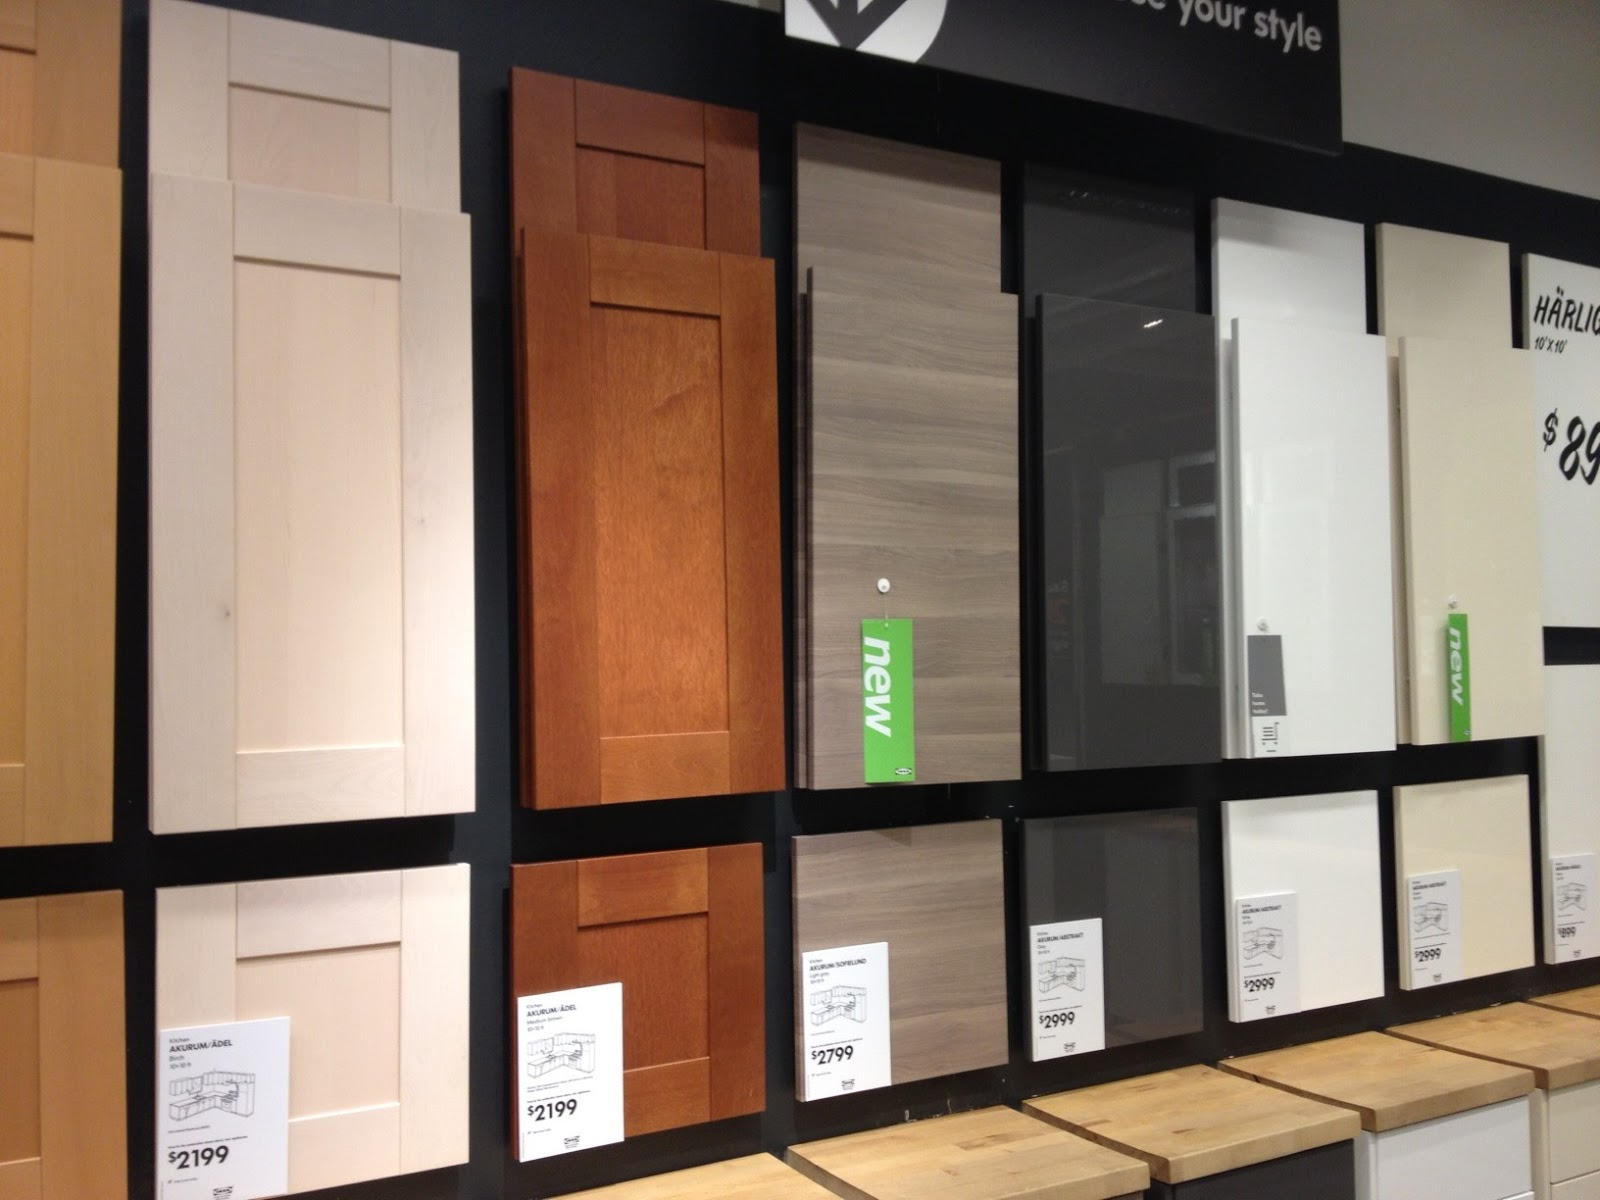 ikea kitchen cabinets door lineup kitchen cabinet reviews IKEA Kitchen Cabinets the Door lineup